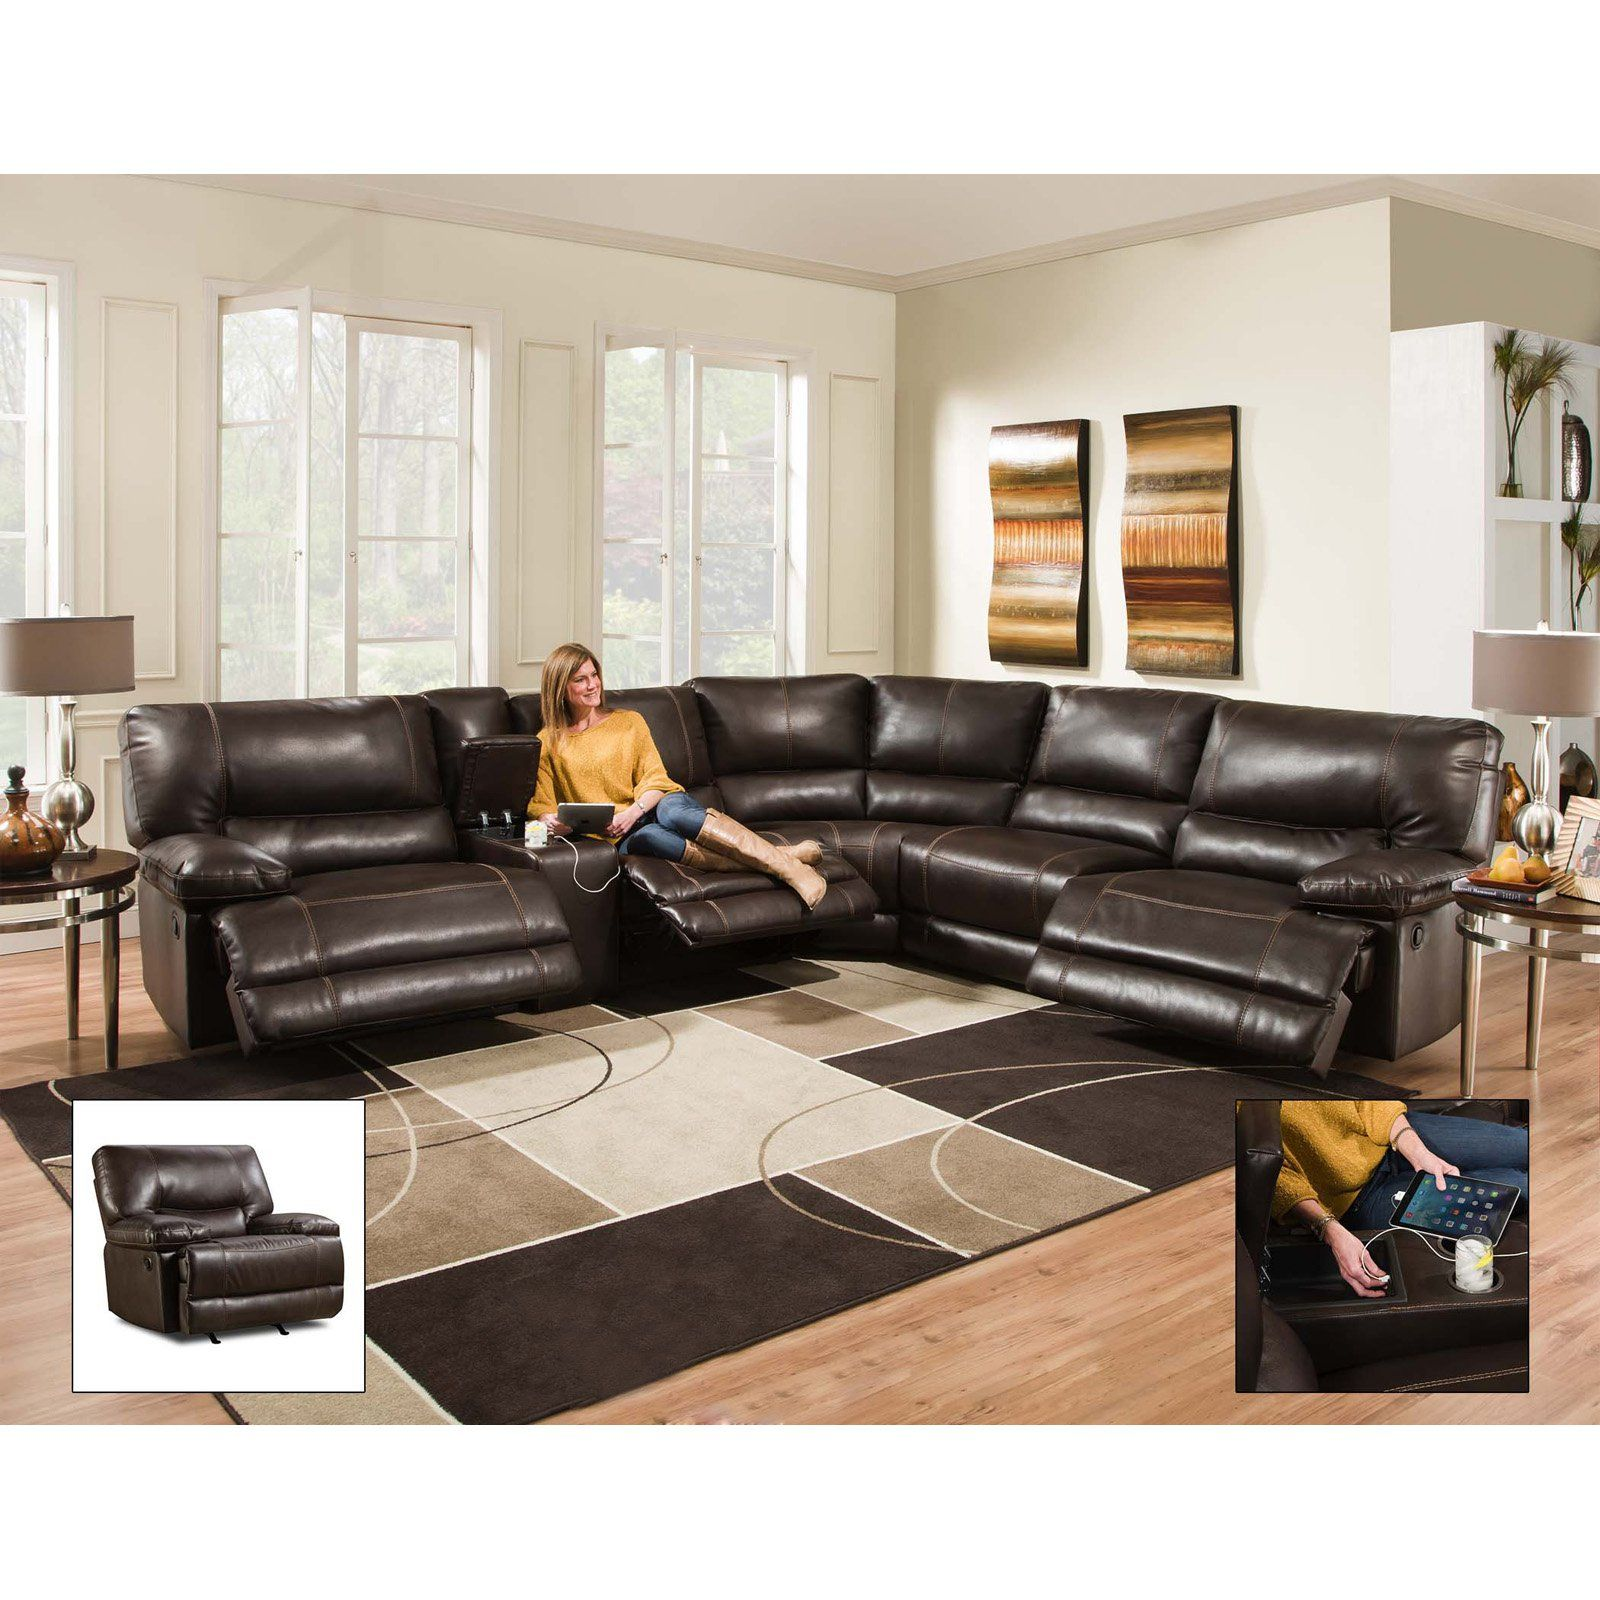 Best Chelsea Home Furniture Bane 6 Piece Sectional Recliner 400 x 300